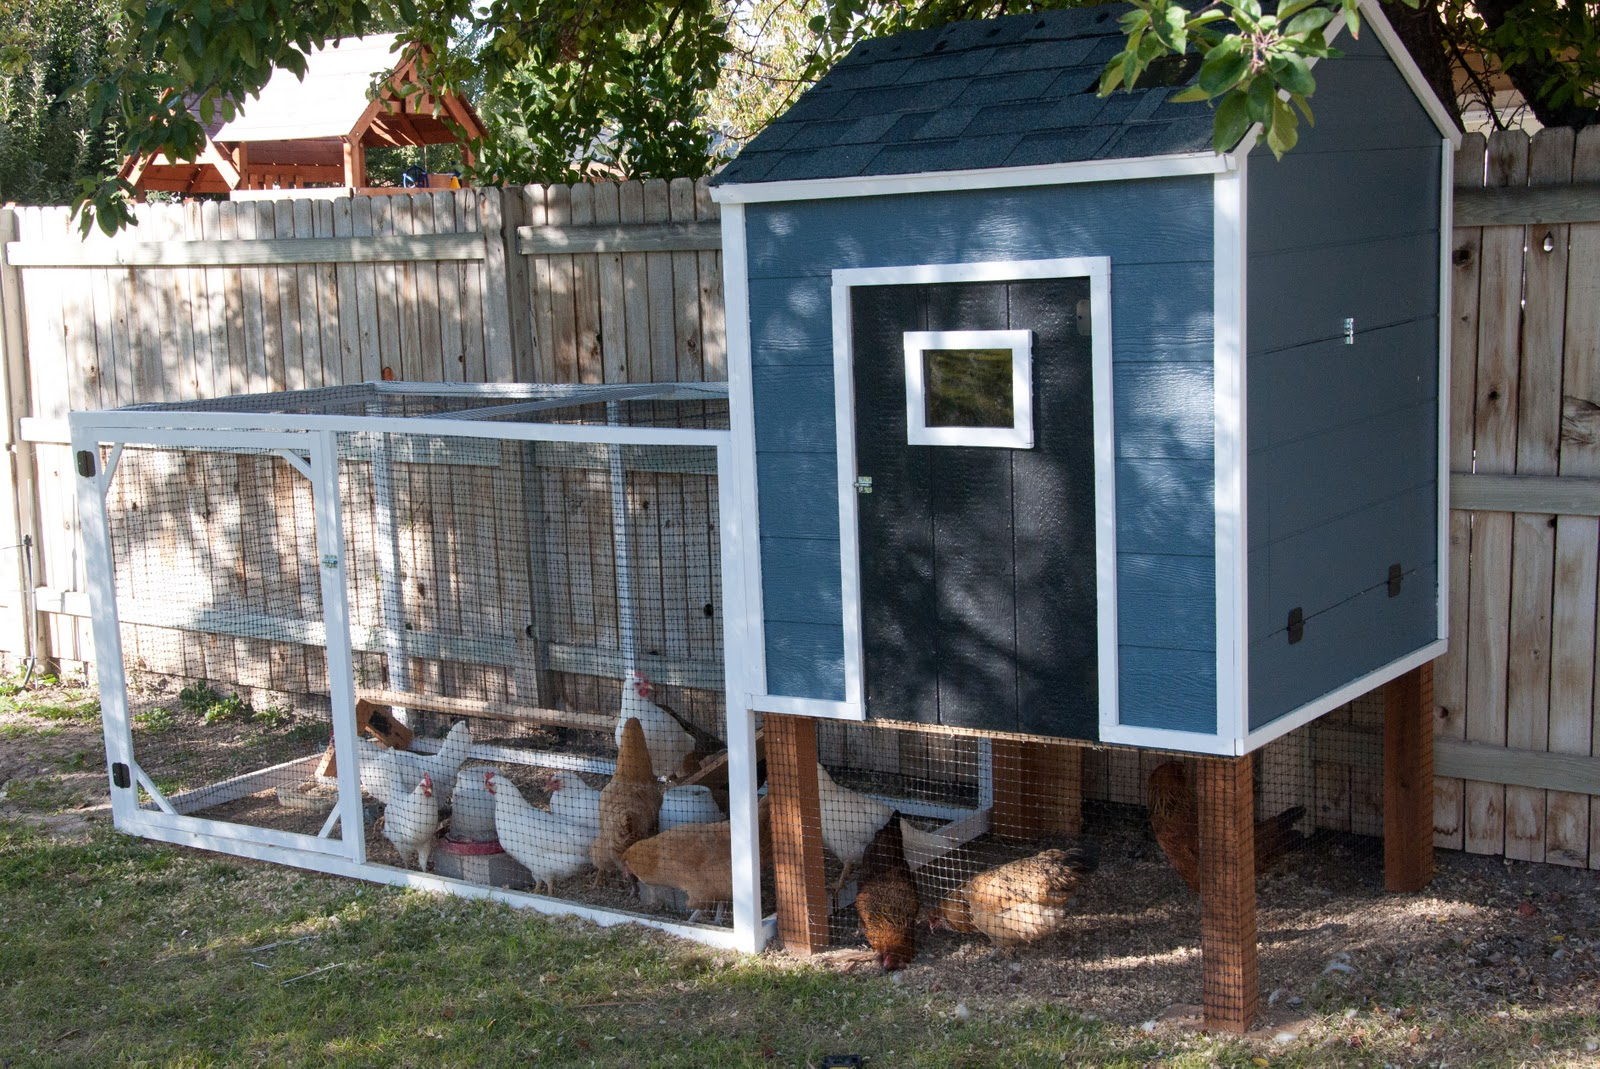 Our Chicken Coop - A story of chickens